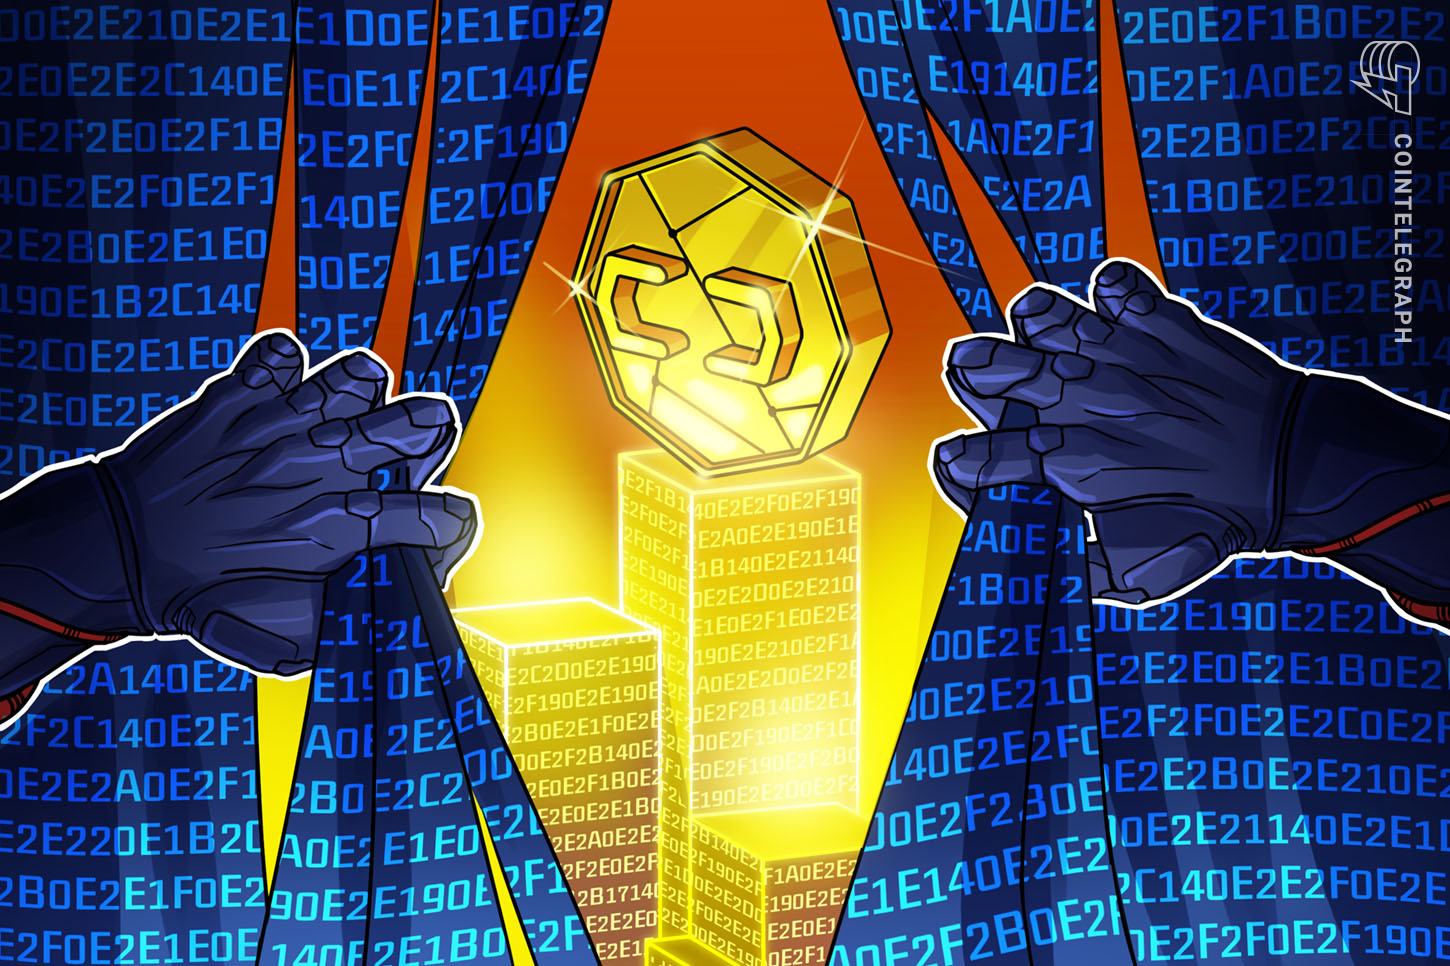 Zcash Researchers Discover Criminals Are Laughably Unskilled at Using Crypto